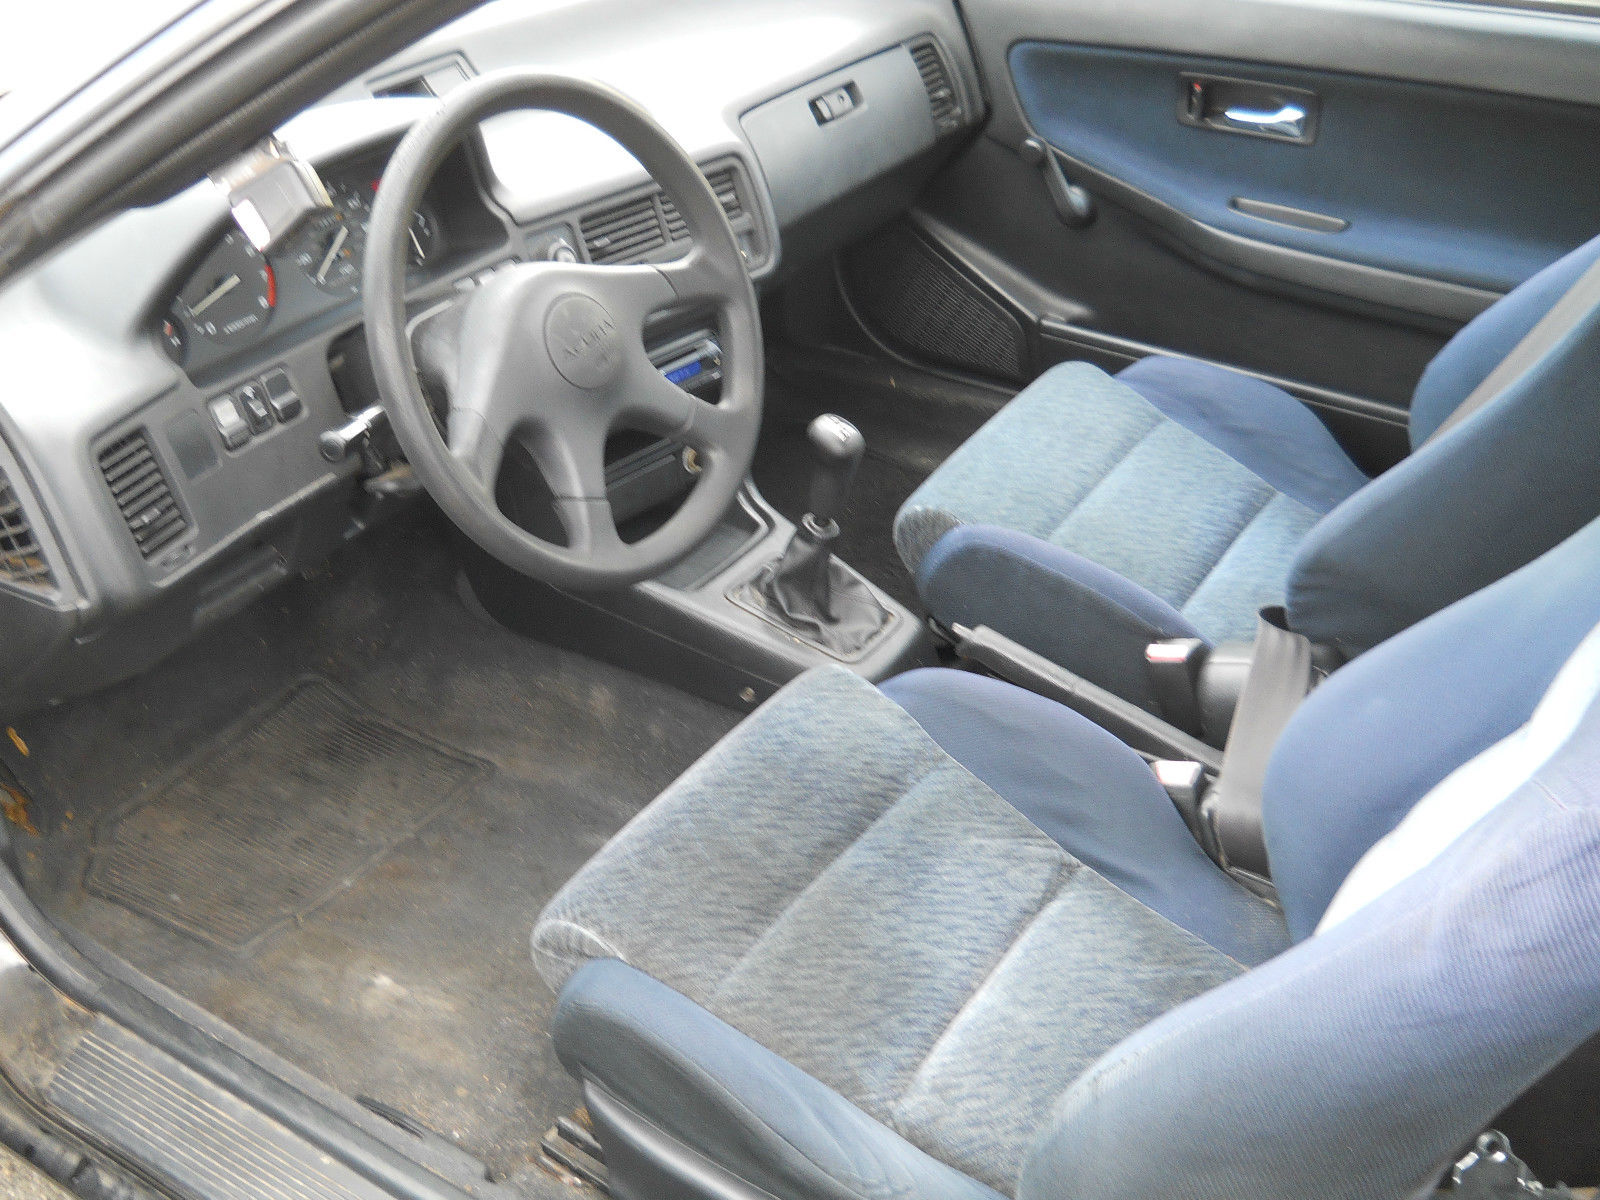 Acura Integra RS Hatchback Door L With Manual Transmission - Acura integra manual transmission